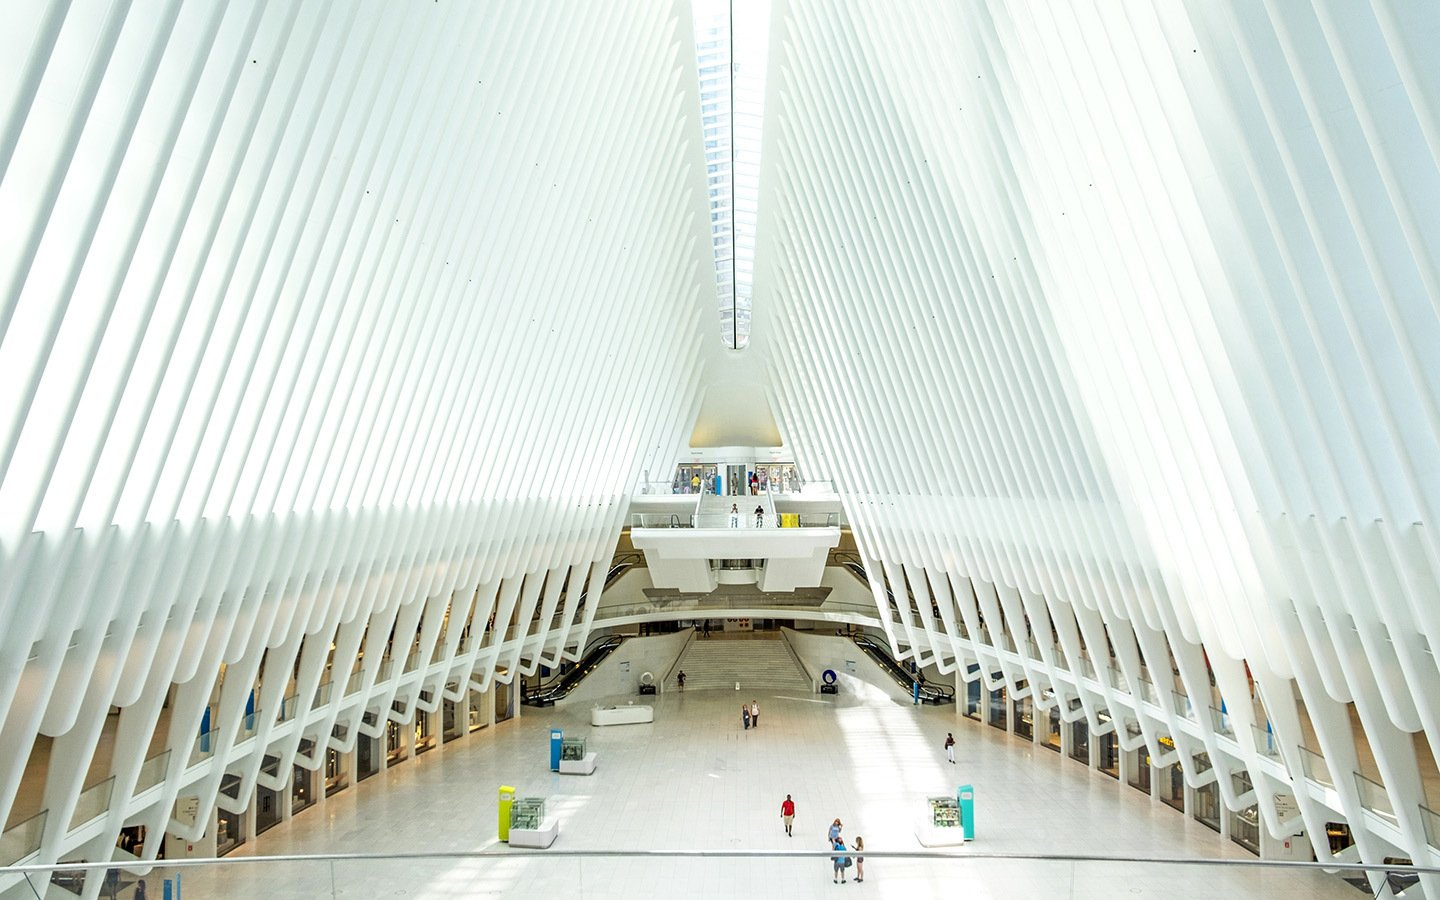 The Oculus at the World Trade Center, New York